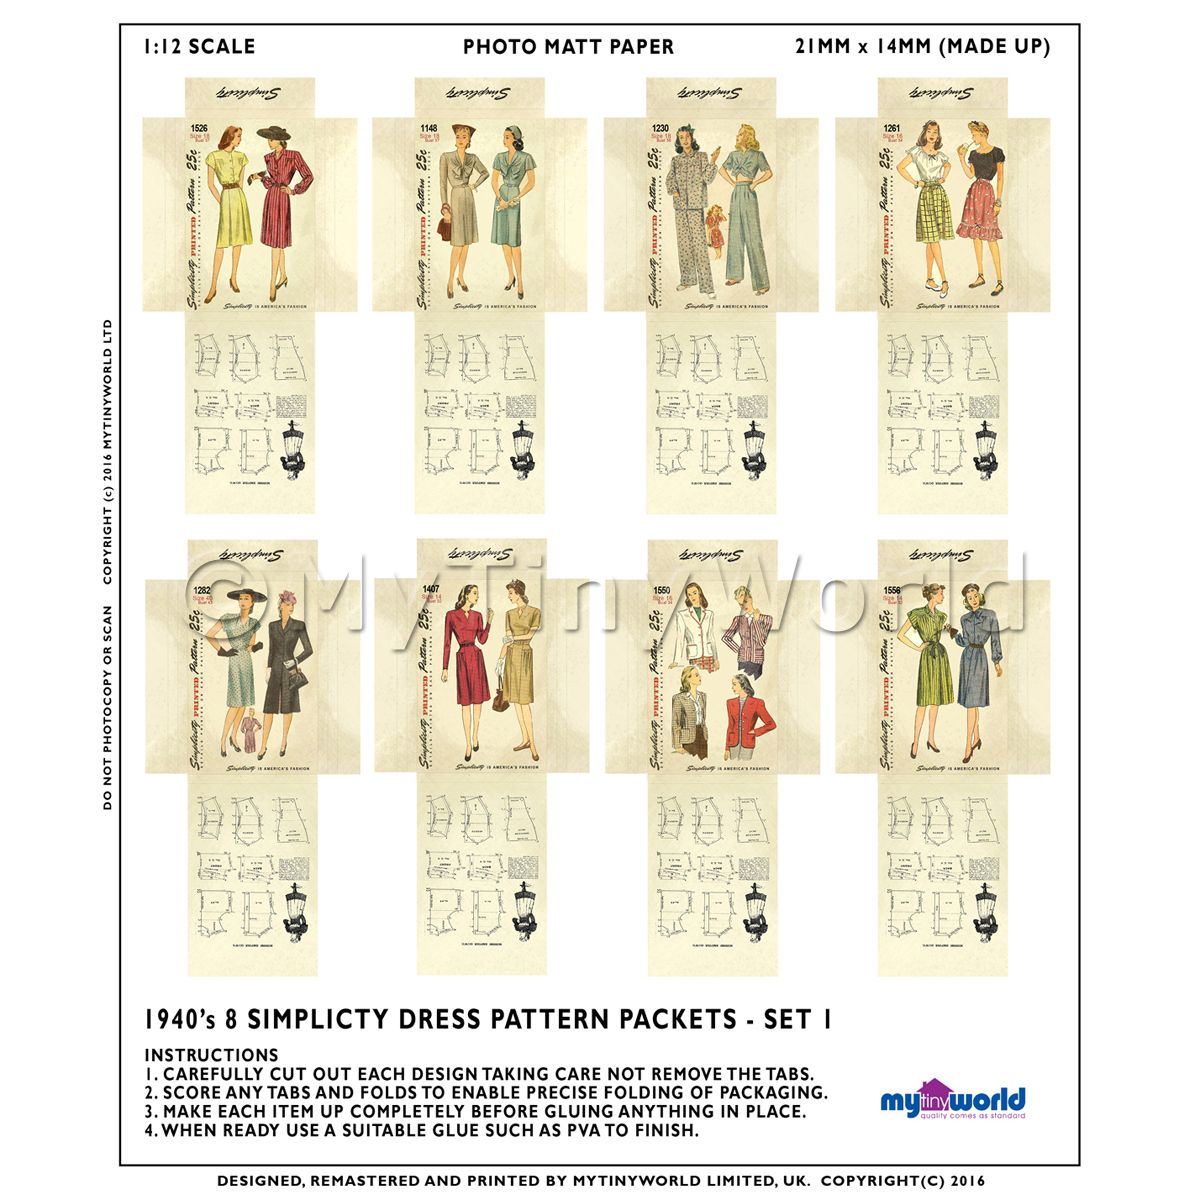 8 Miniature DIY Simplicity Dress Pattern Packets (DPDS01)